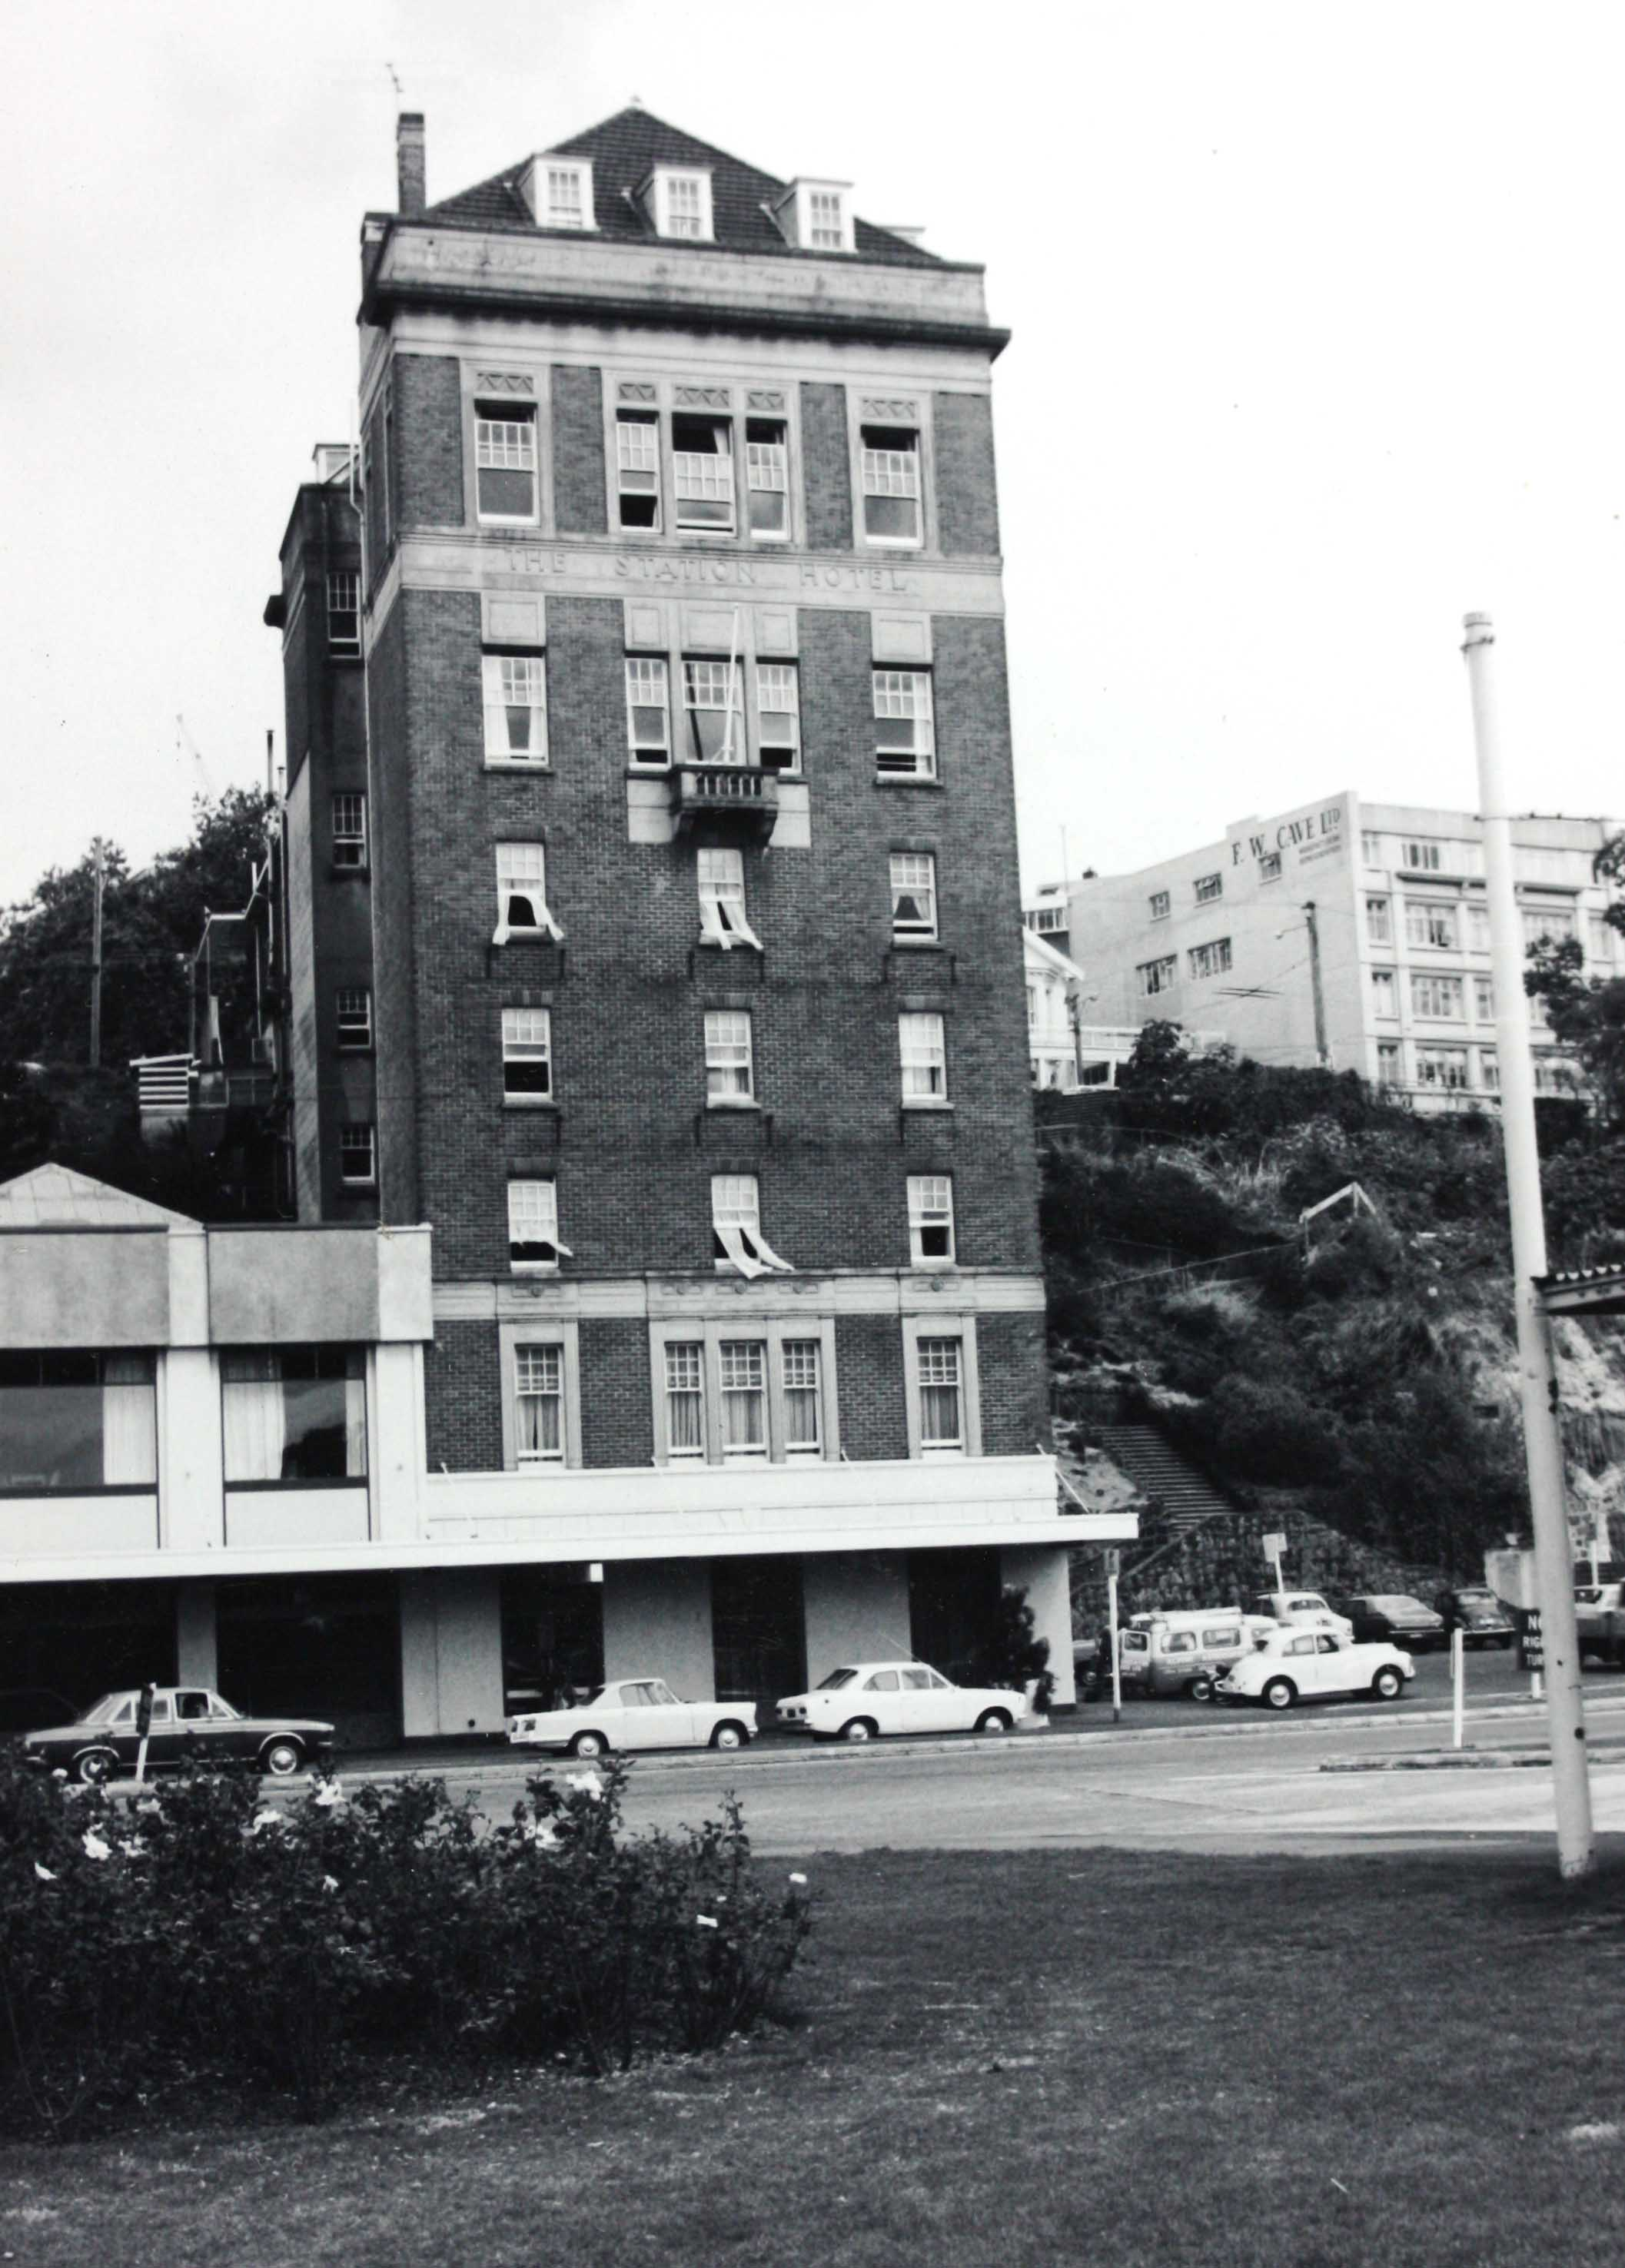 Black and white photo showing the front of a tall building